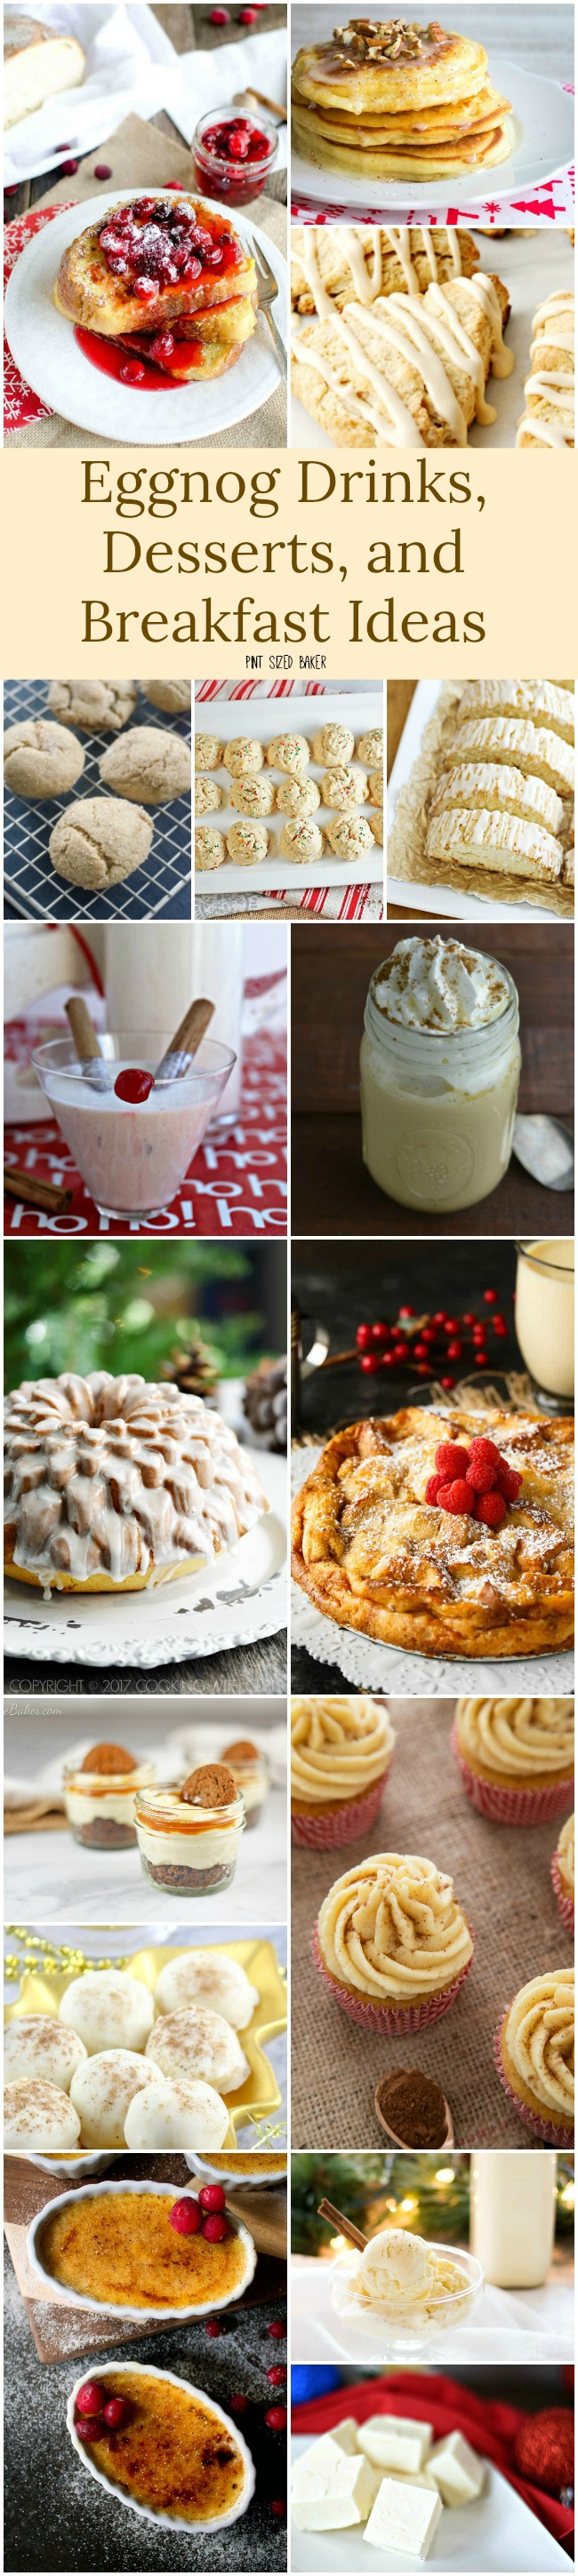 Do you make your own eggnog Love it or hate it, here's 16 Eggnog Drinks, Desserts, and Breakfast Recipe Ideas that are perfect for the holiday season.